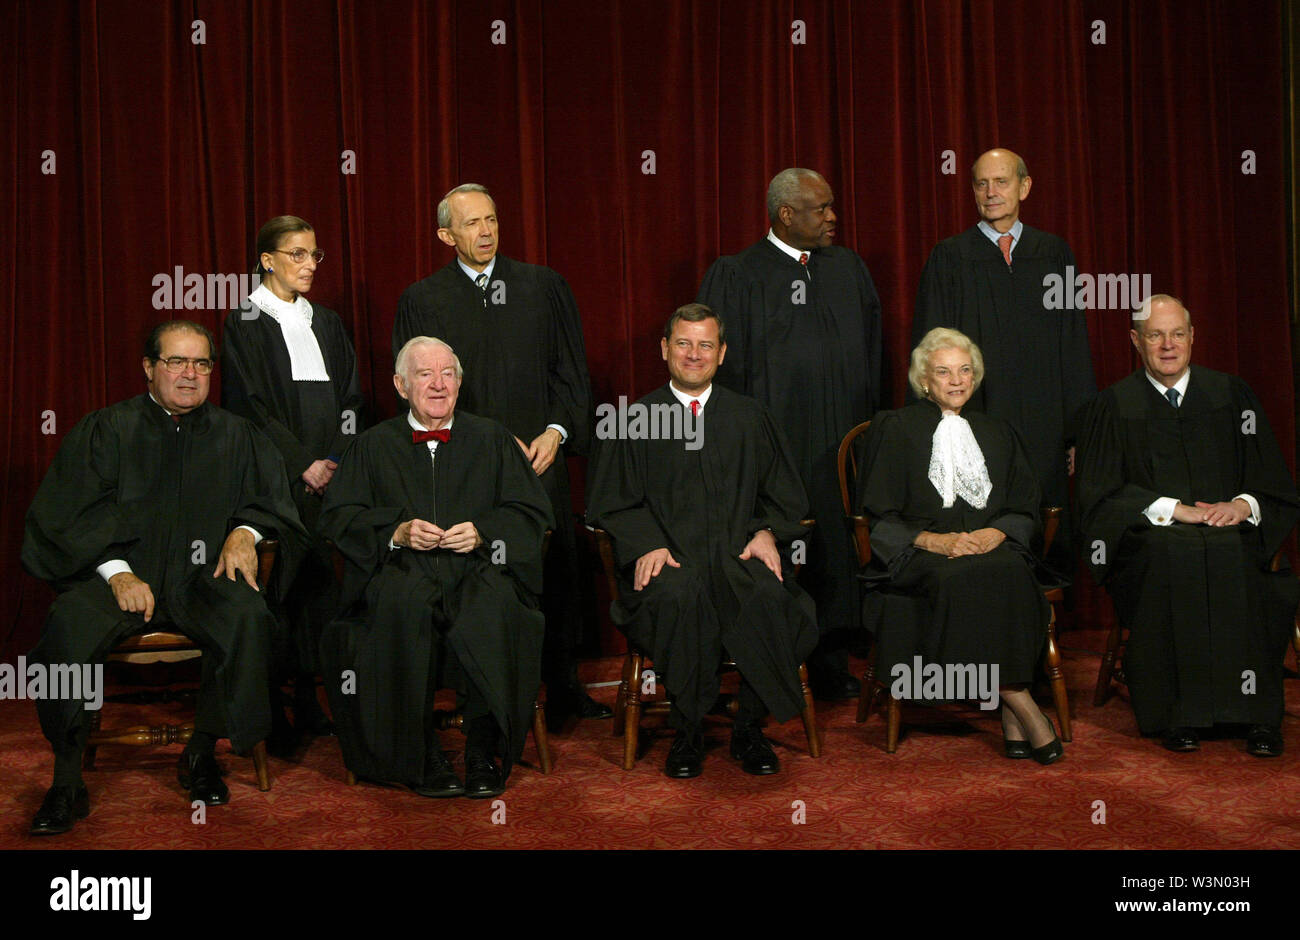 July 16, 2019 - Washington, District of Columbia, USA - Washington, DC - October 31, 2005 -- The Supreme Court justices pose for their official photograph at the United States Supreme Court in Washington, DC on October 31, 2005. Left to right bottom row: Associate Justices Antonin Scalia, John Paul Stevens, Chief Justice John G. Roberts, Jr., Associate Justices Sandra Day O'Connor and Anthony M. Kennedy. Top Row: Associate Justices Ruth Bader Ginsburg, David H. Souter, Clarence Thomas, and Stephen G. Breyer. Credit: Dennis Brack - Pool via CNP (Credit Image: © Dennis Brack/CNP via ZUMA - Stock Image